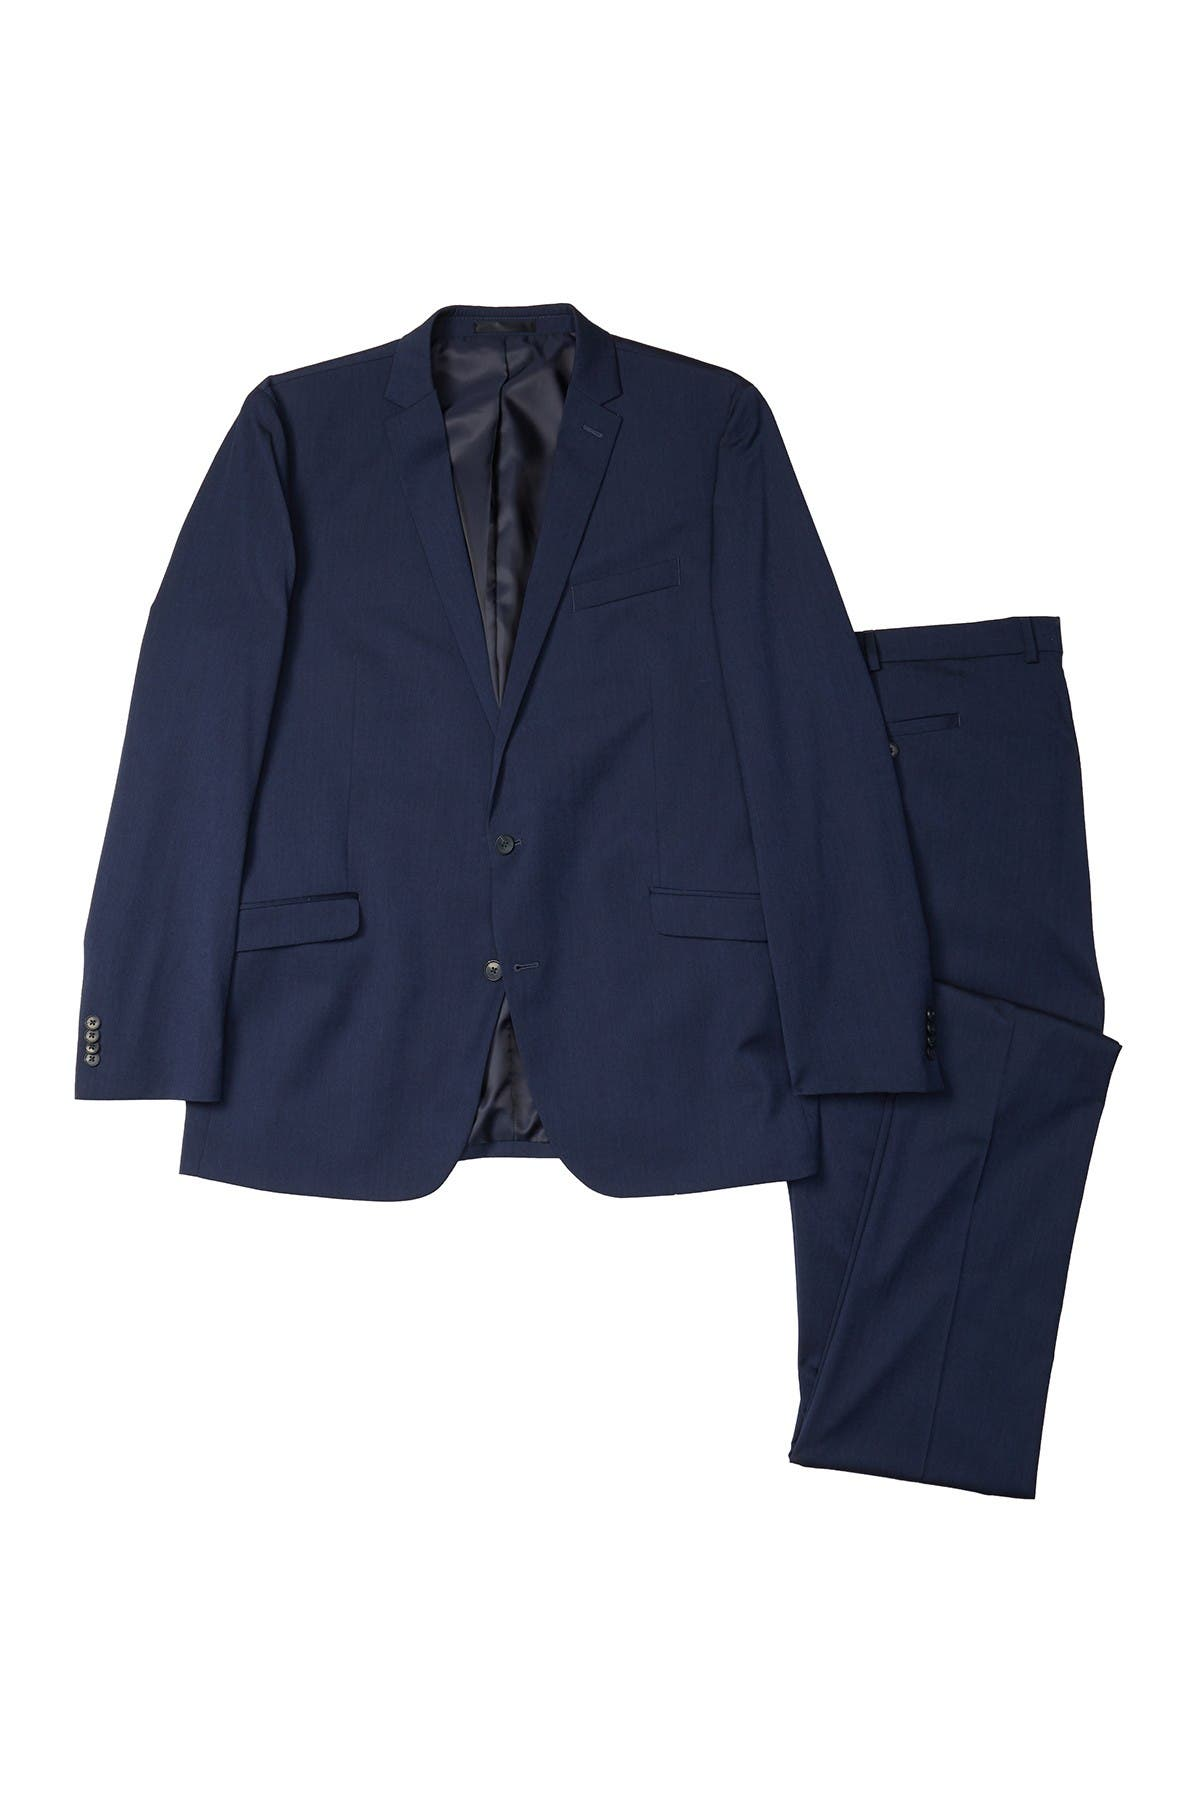 Image of Kenneth Cole Reaction Navy Iridescent Two Button Noth Flex Fit Suit